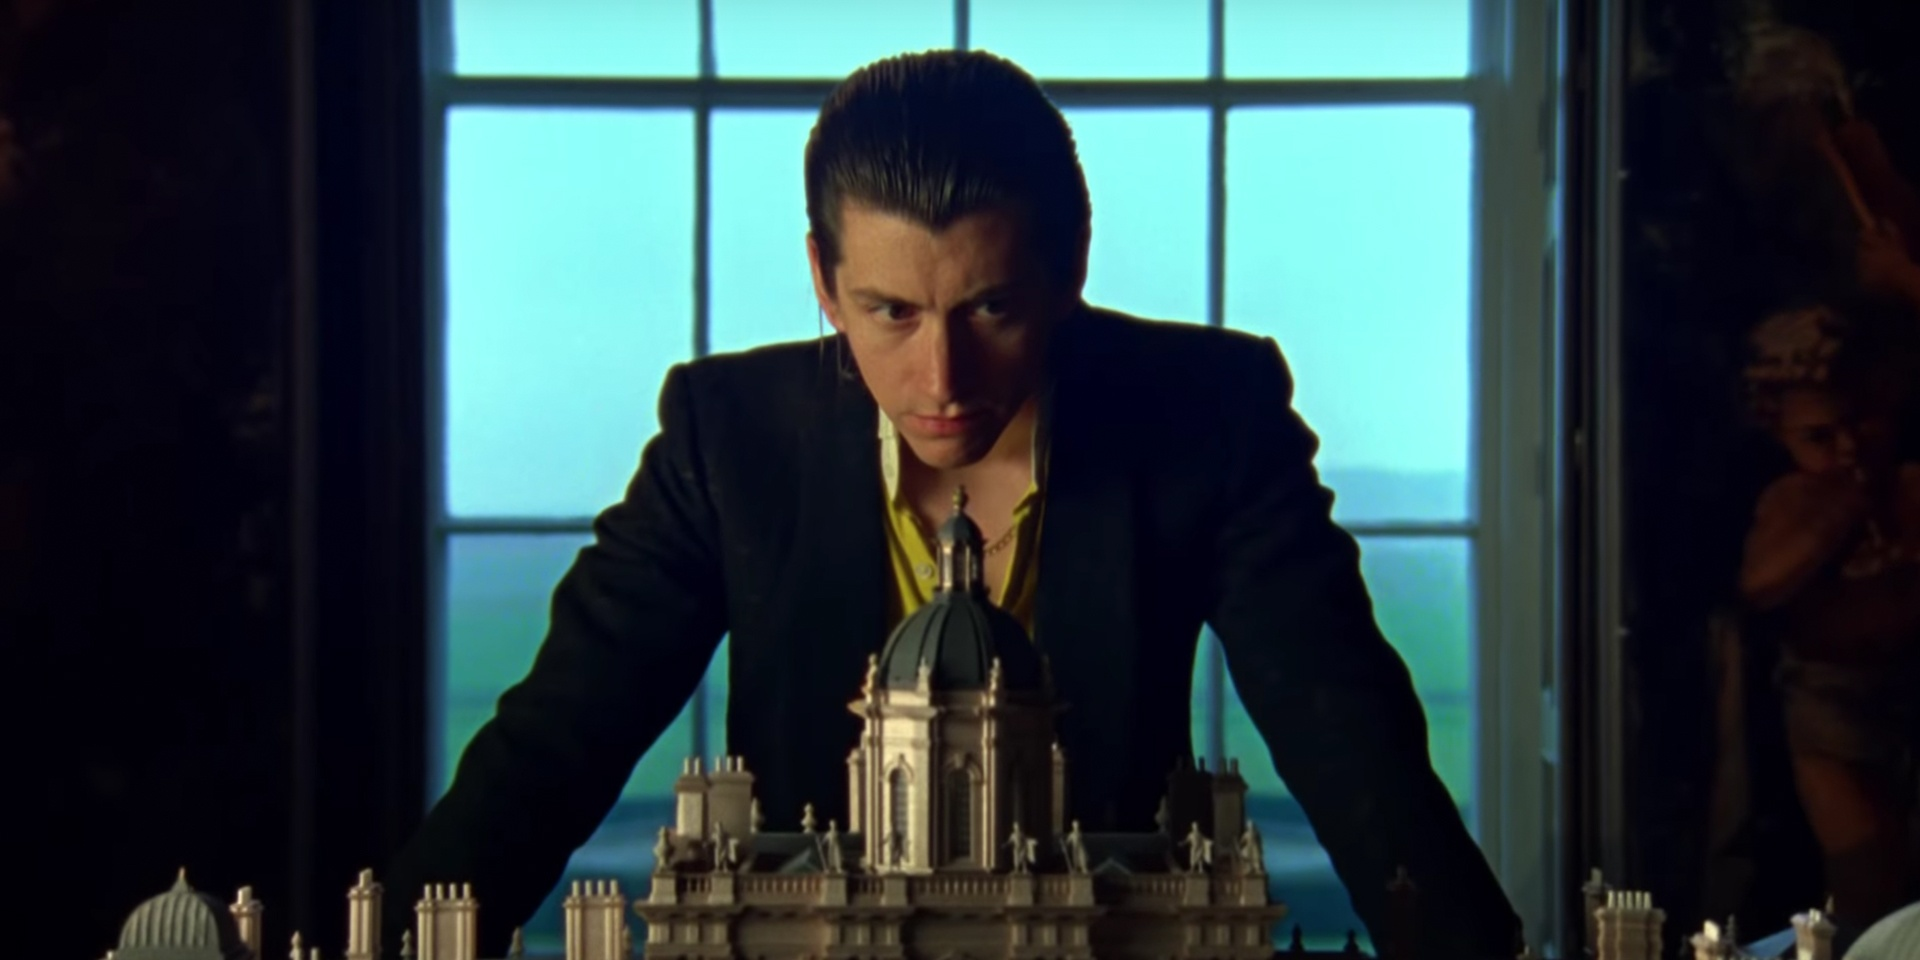 Arctic Monkeys release enigmatic new video for 'Four Out Of Five' – watch